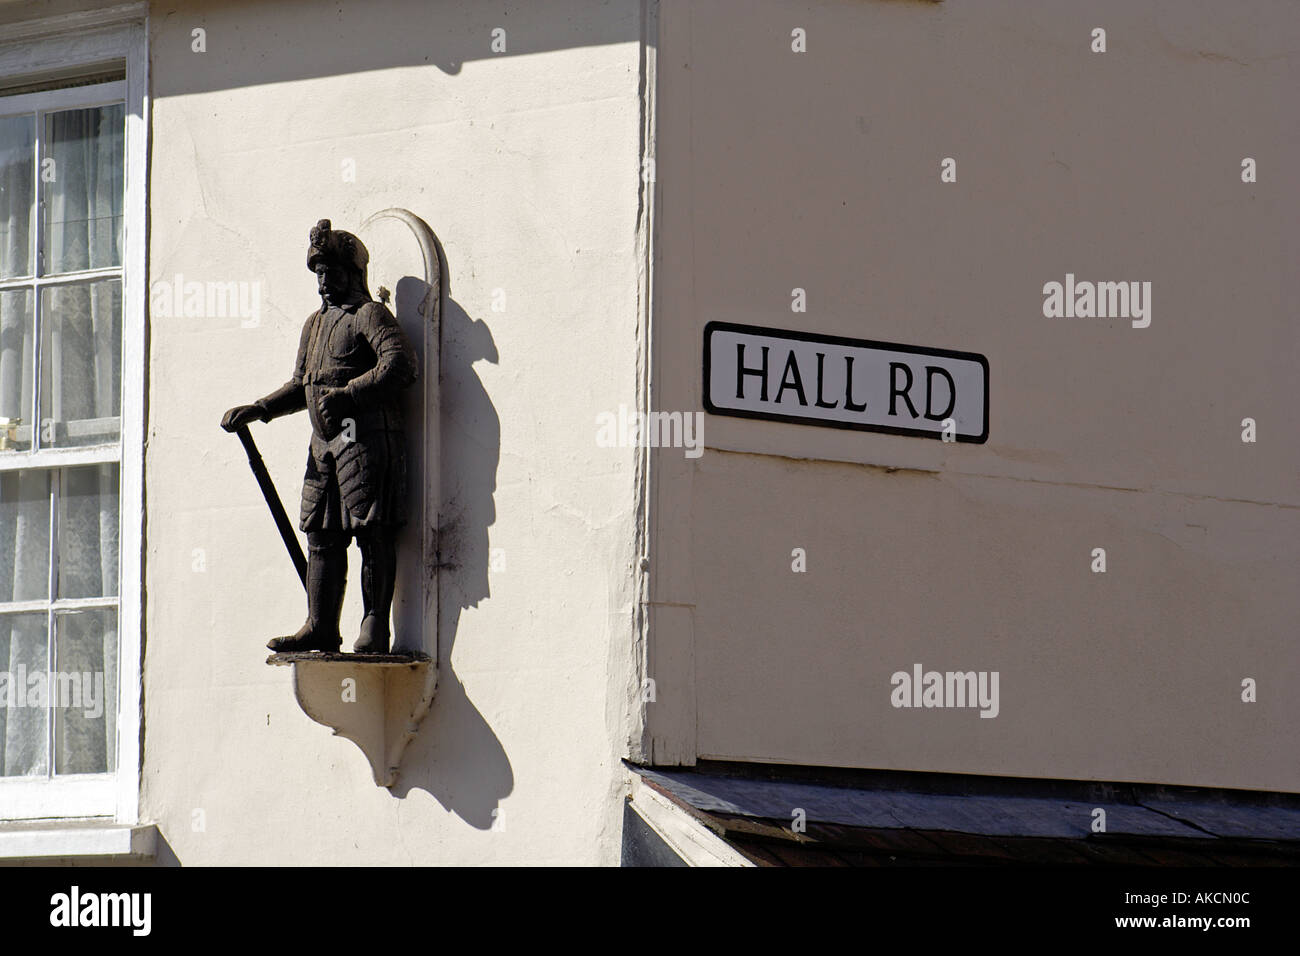 Statue on the facade of a house on the corner of Hig Street and Hall Road Lavenham Suffolk East Anglia UK - Stock Image